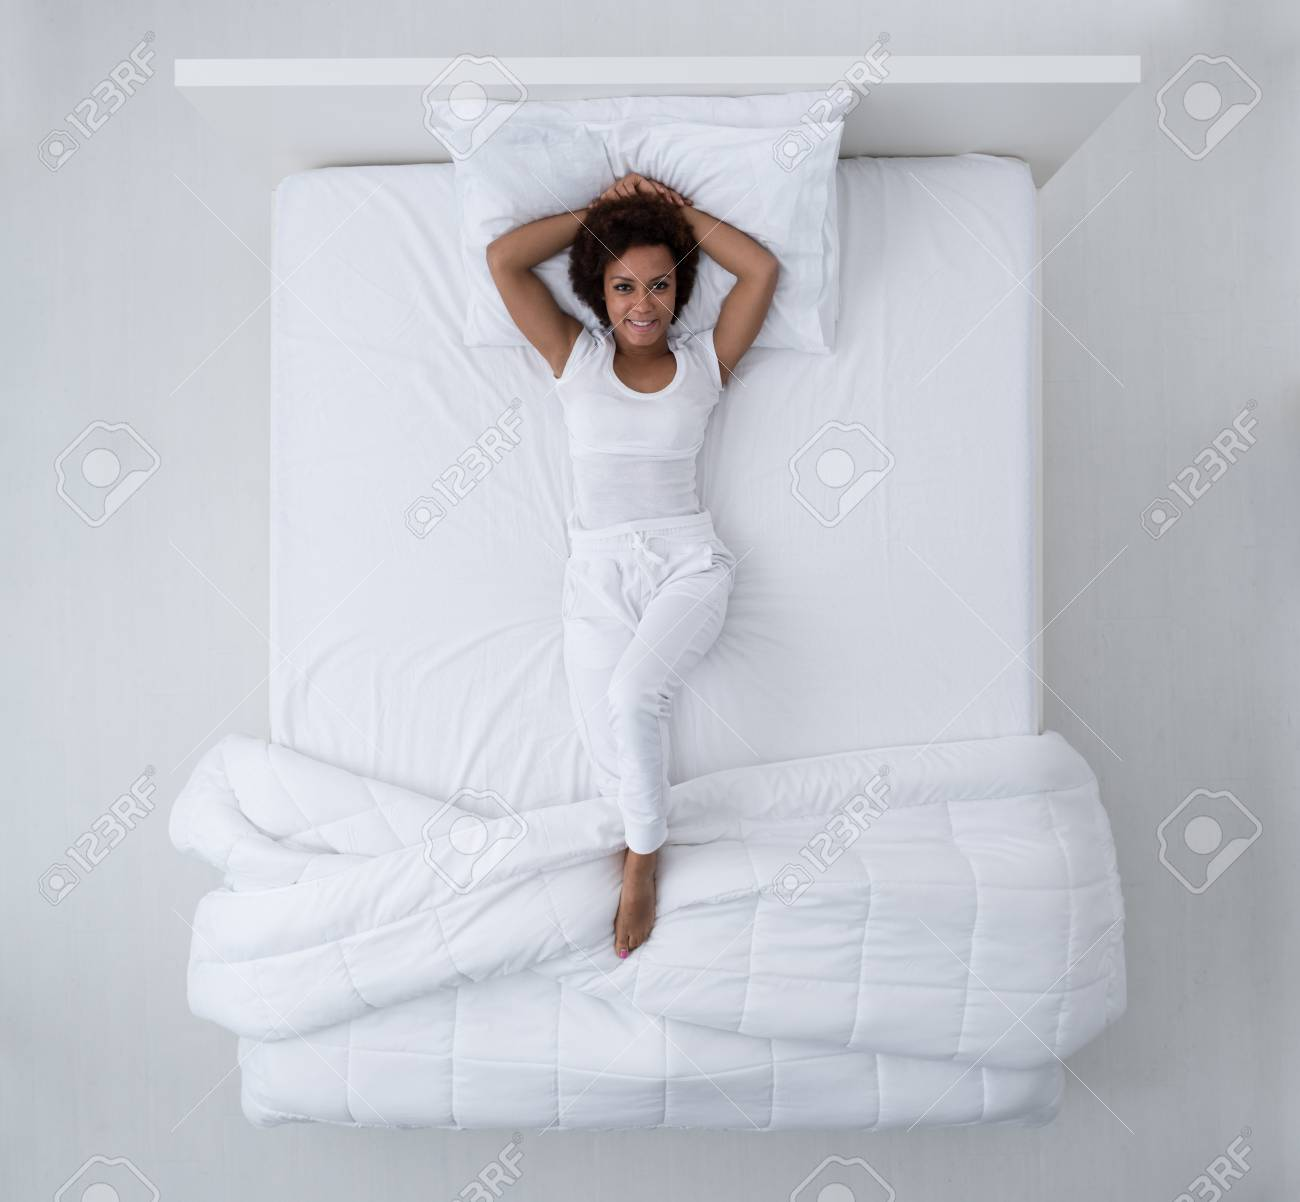 Beautiful african american woman lying in bed and smiling at camera, top view - 88260806